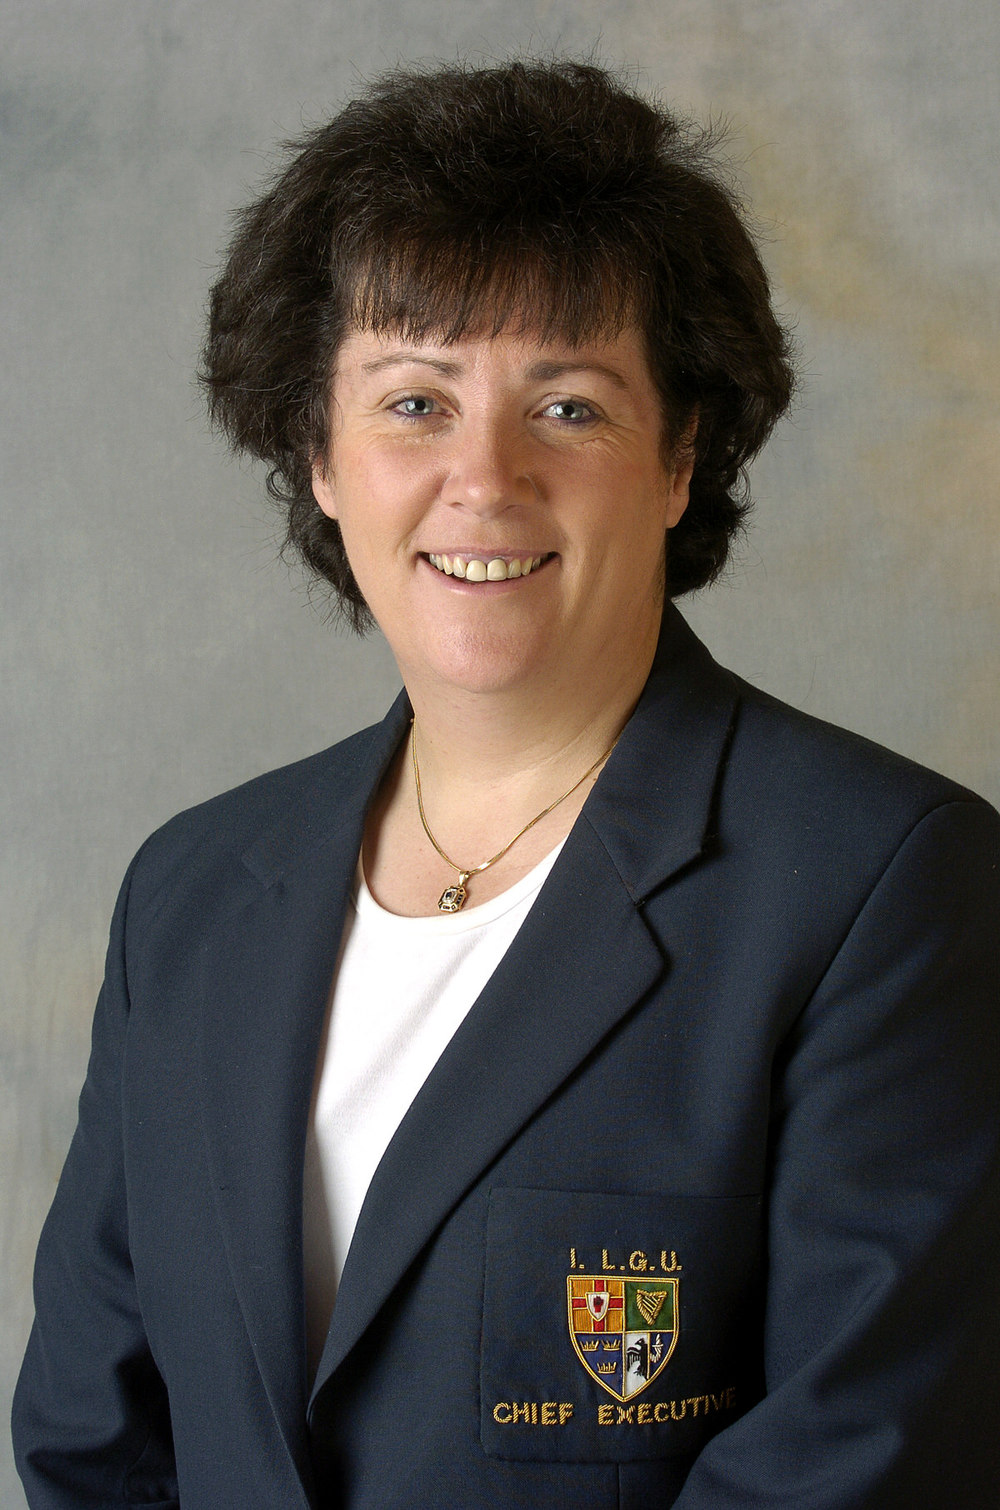 Sinead Heraty, Chief Executive of the Irish Ladies Golf Union